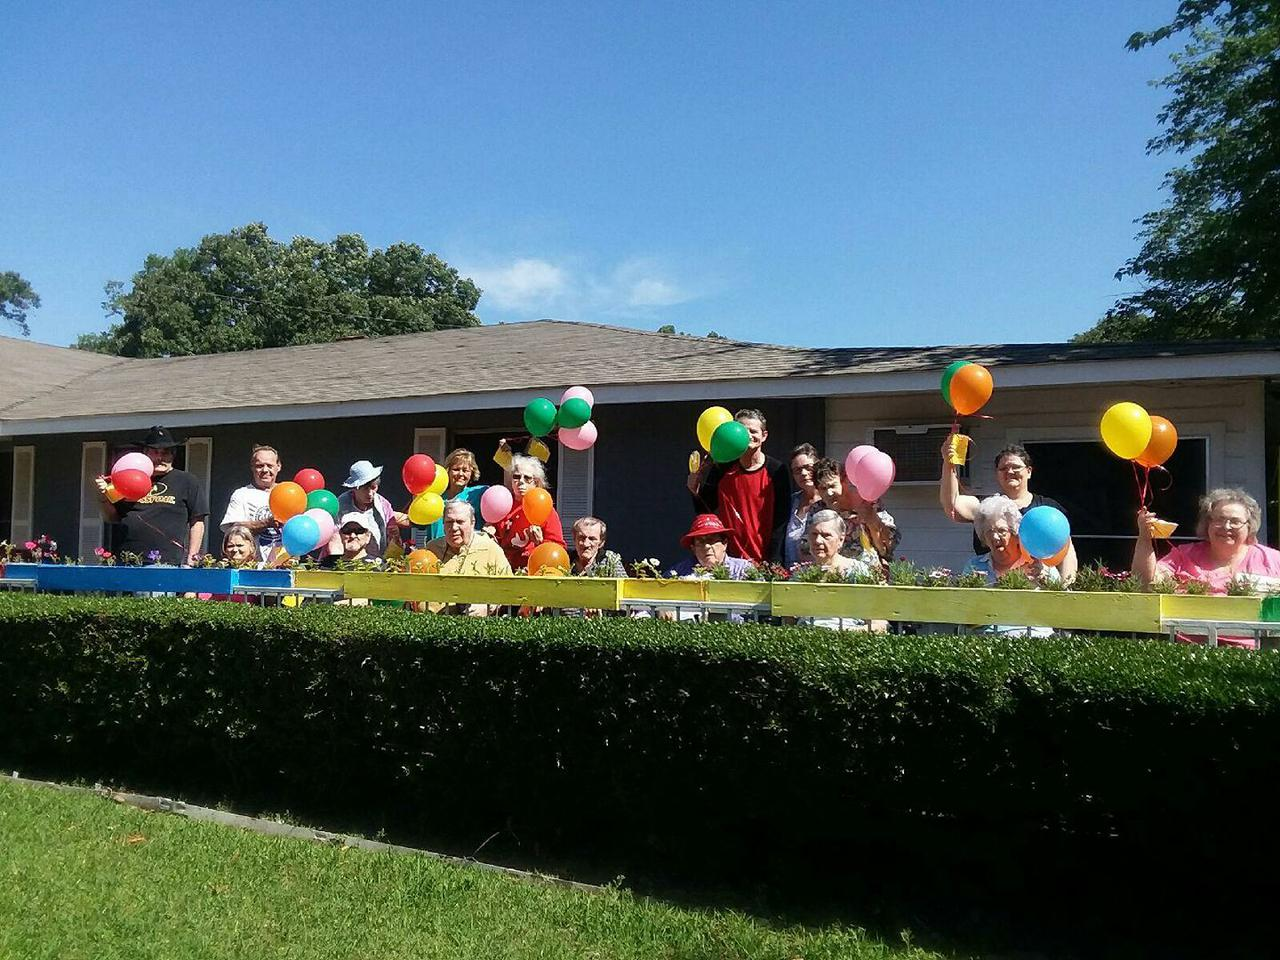 Kicking off National Nursing Home week, with a baloon release